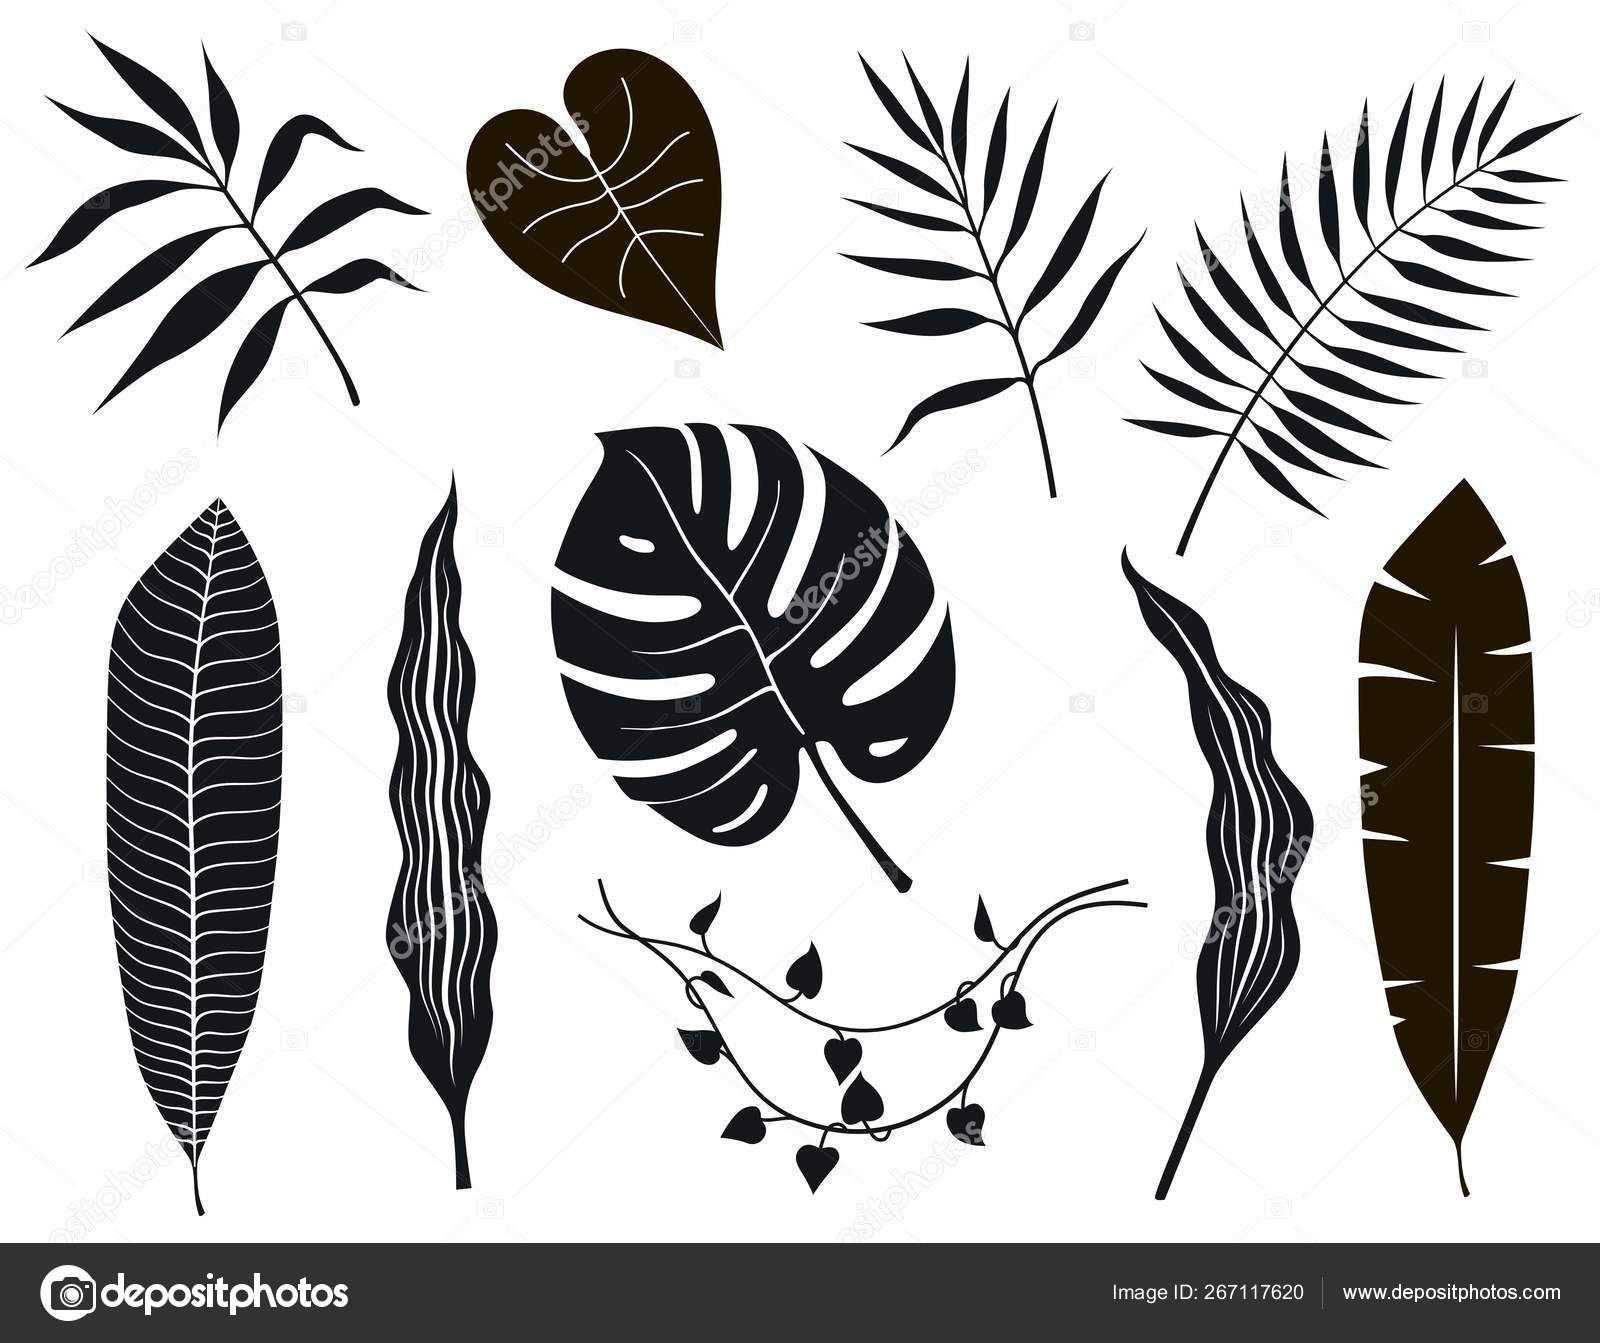 Black And White Tropical Leaves On White Background Stock Vector C Lapuma 267117620 Choose from over a million free vectors, clipart graphics, vector art images, design templates, and illustrations created by artists worldwide! black and white tropical leaves on white background stock vector c lapuma 267117620